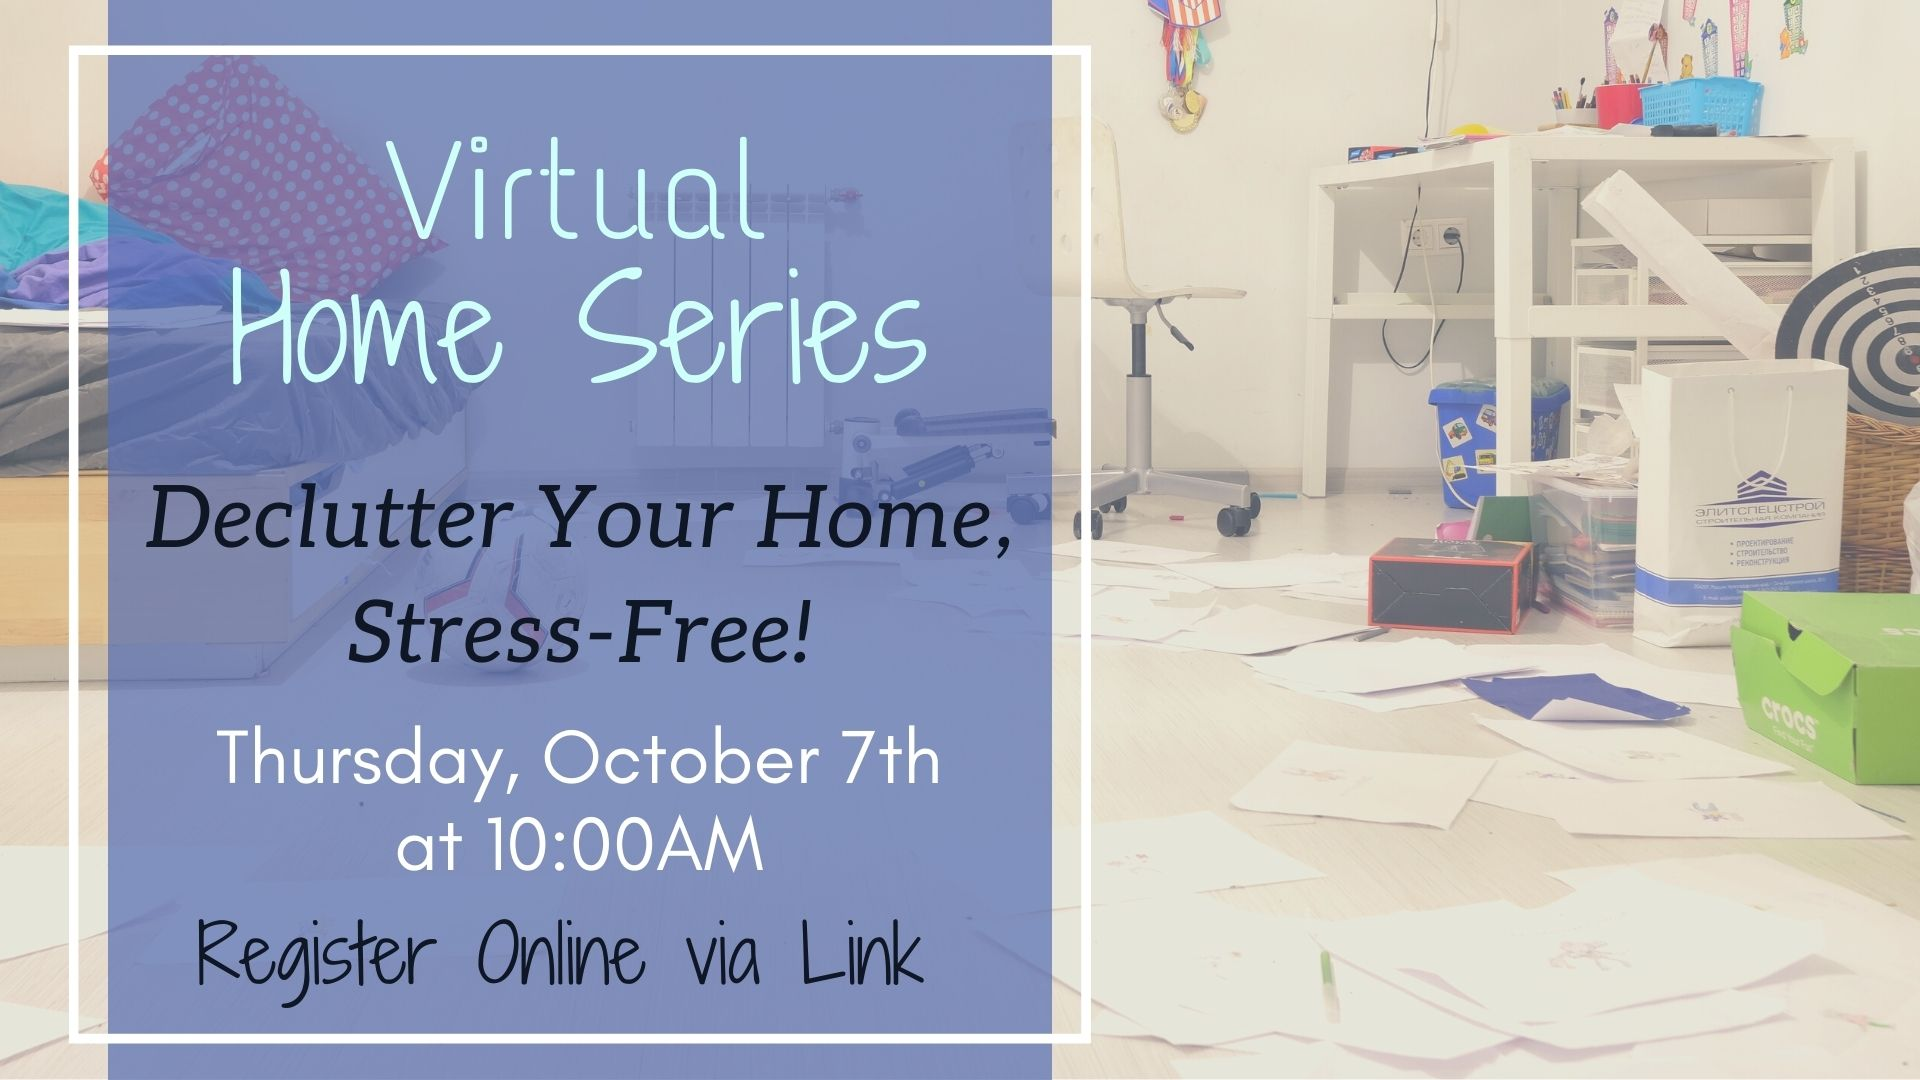 Virtual Home Series: Declutter Your Home, Stress Free!